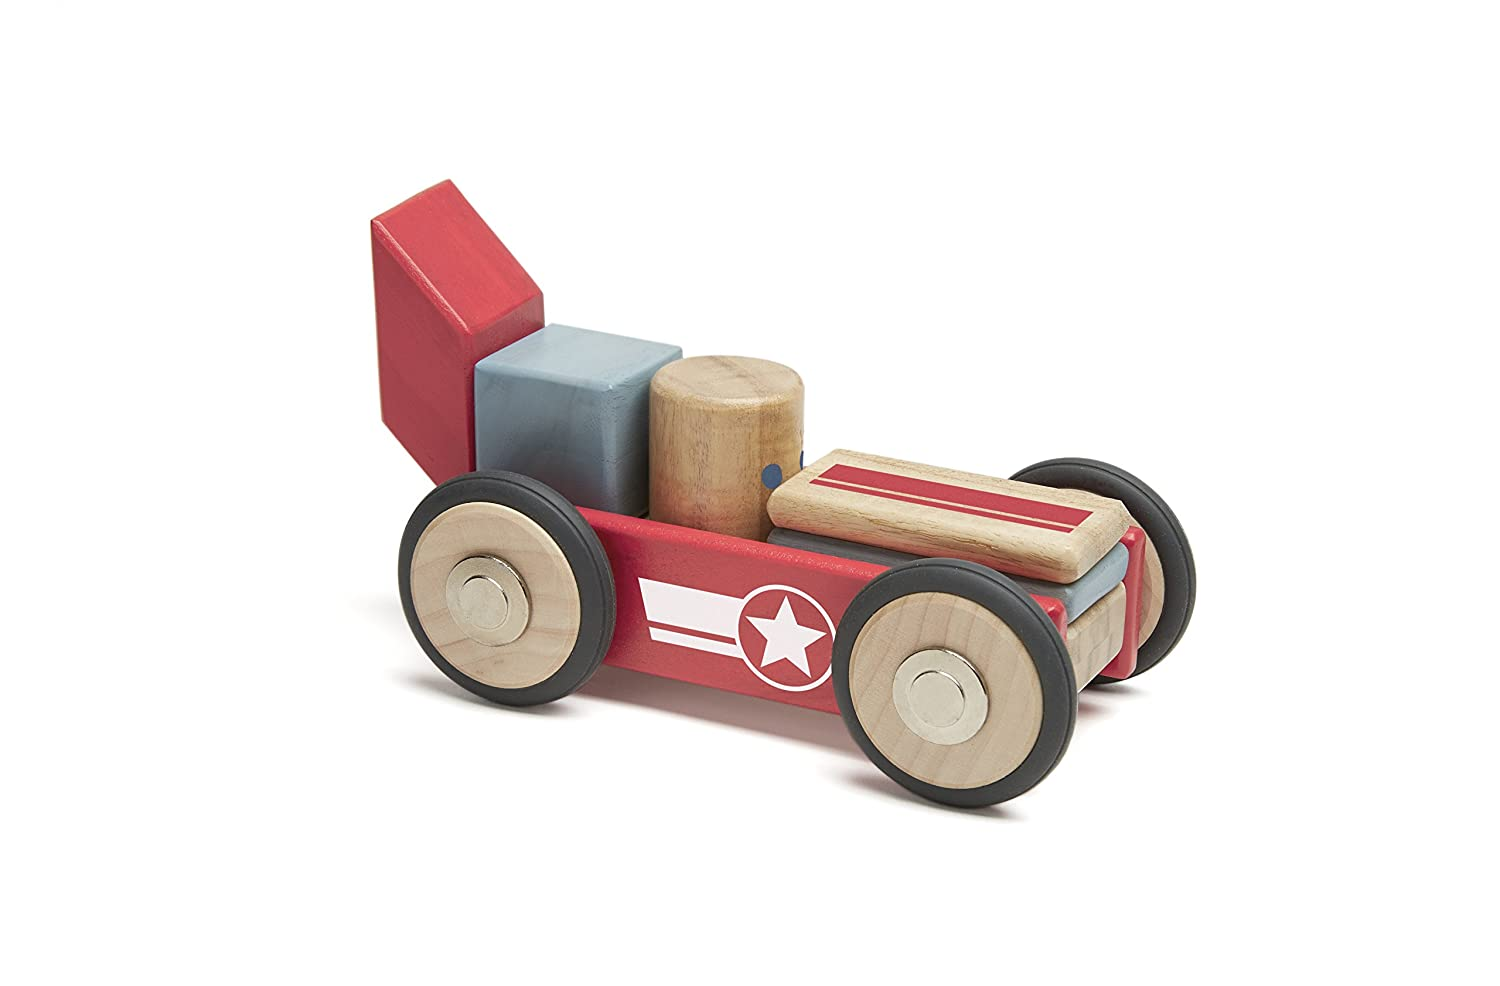 Tegu Daredevil Magnetic Wooden Block Set DDV-OGL-411T